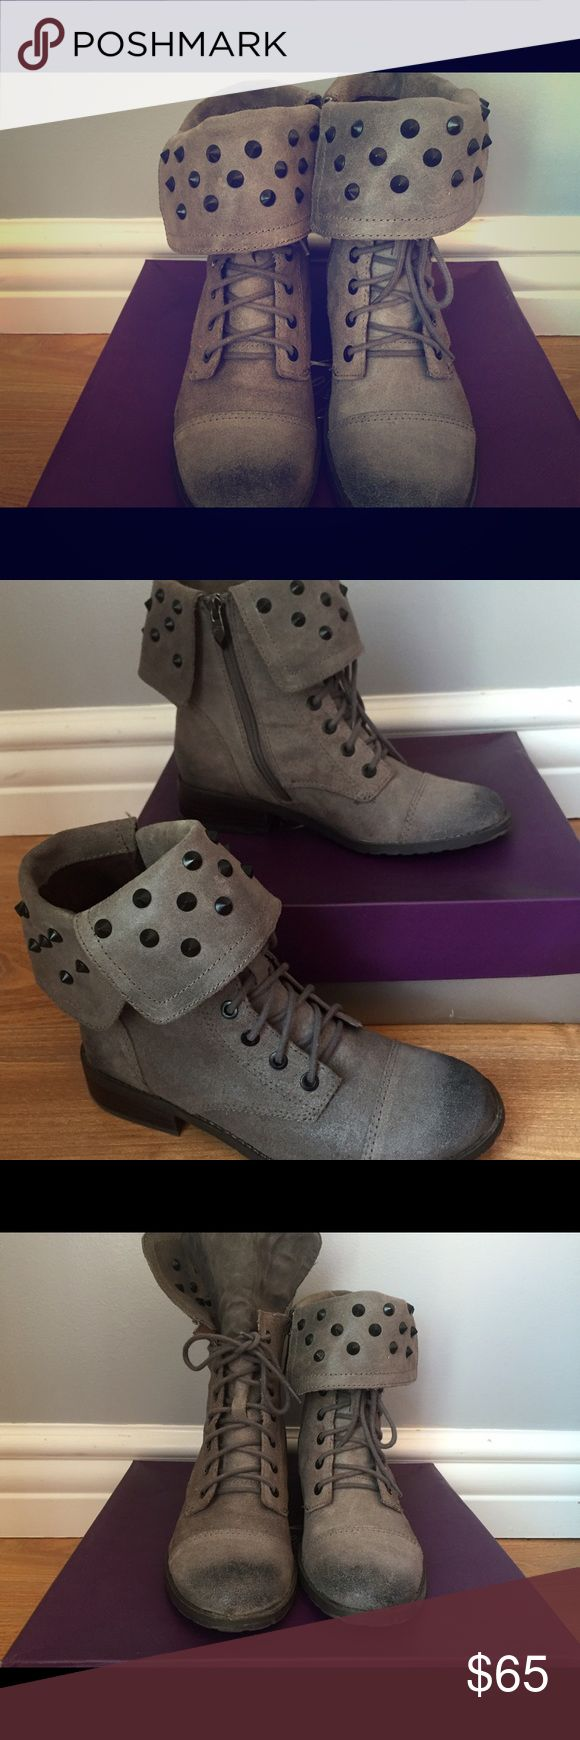 Cute low/high top boots It has rock kind design on it and it is really cute Fergie Shoes Combat & Moto Boots